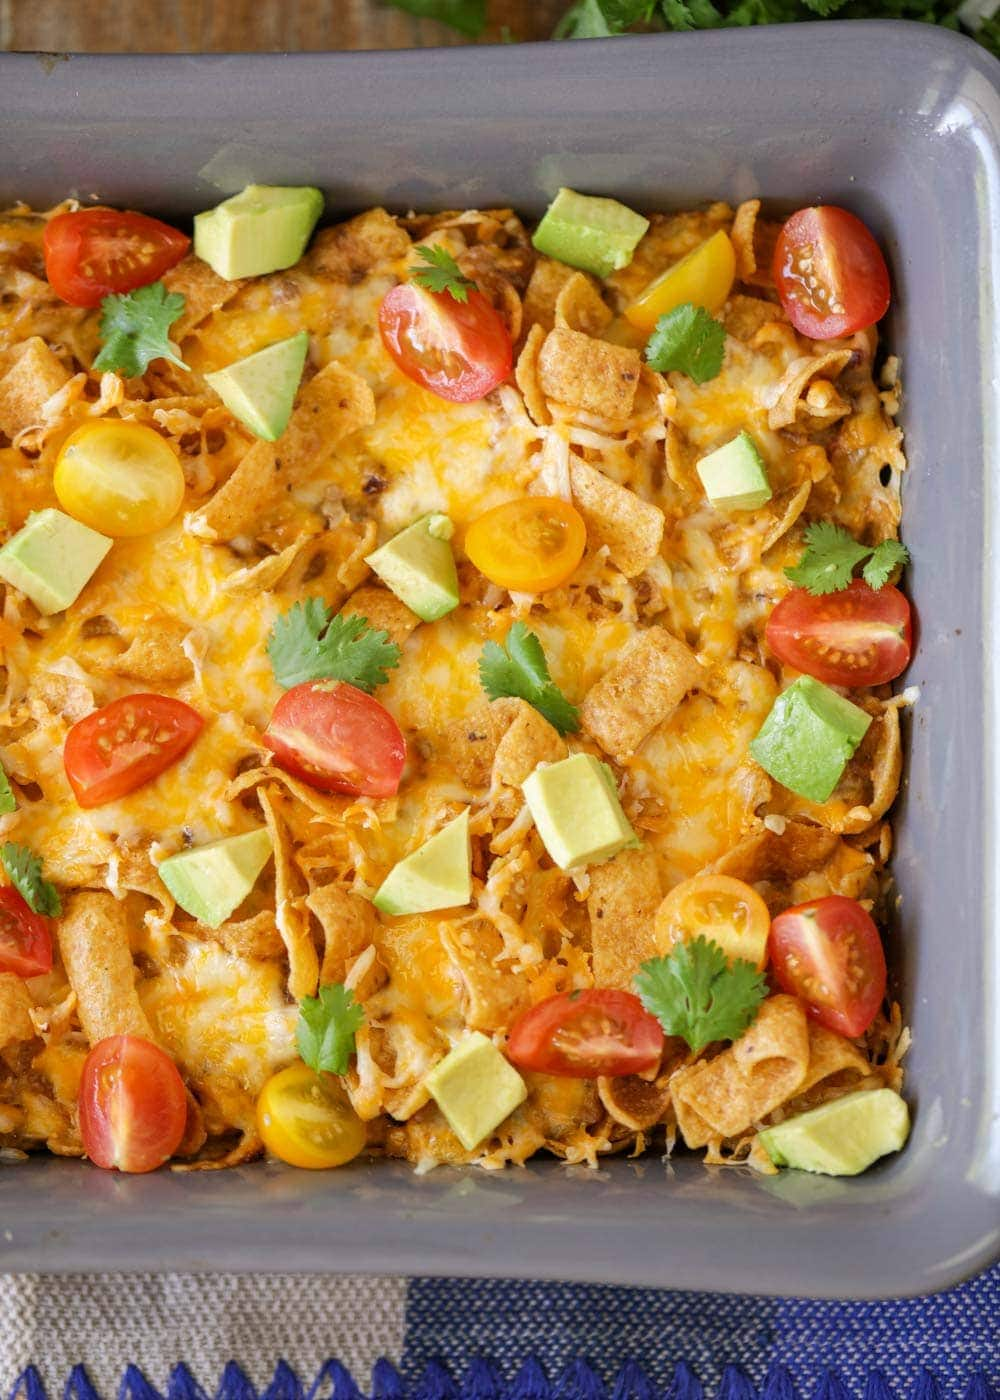 Frito chili pie in a baking pan